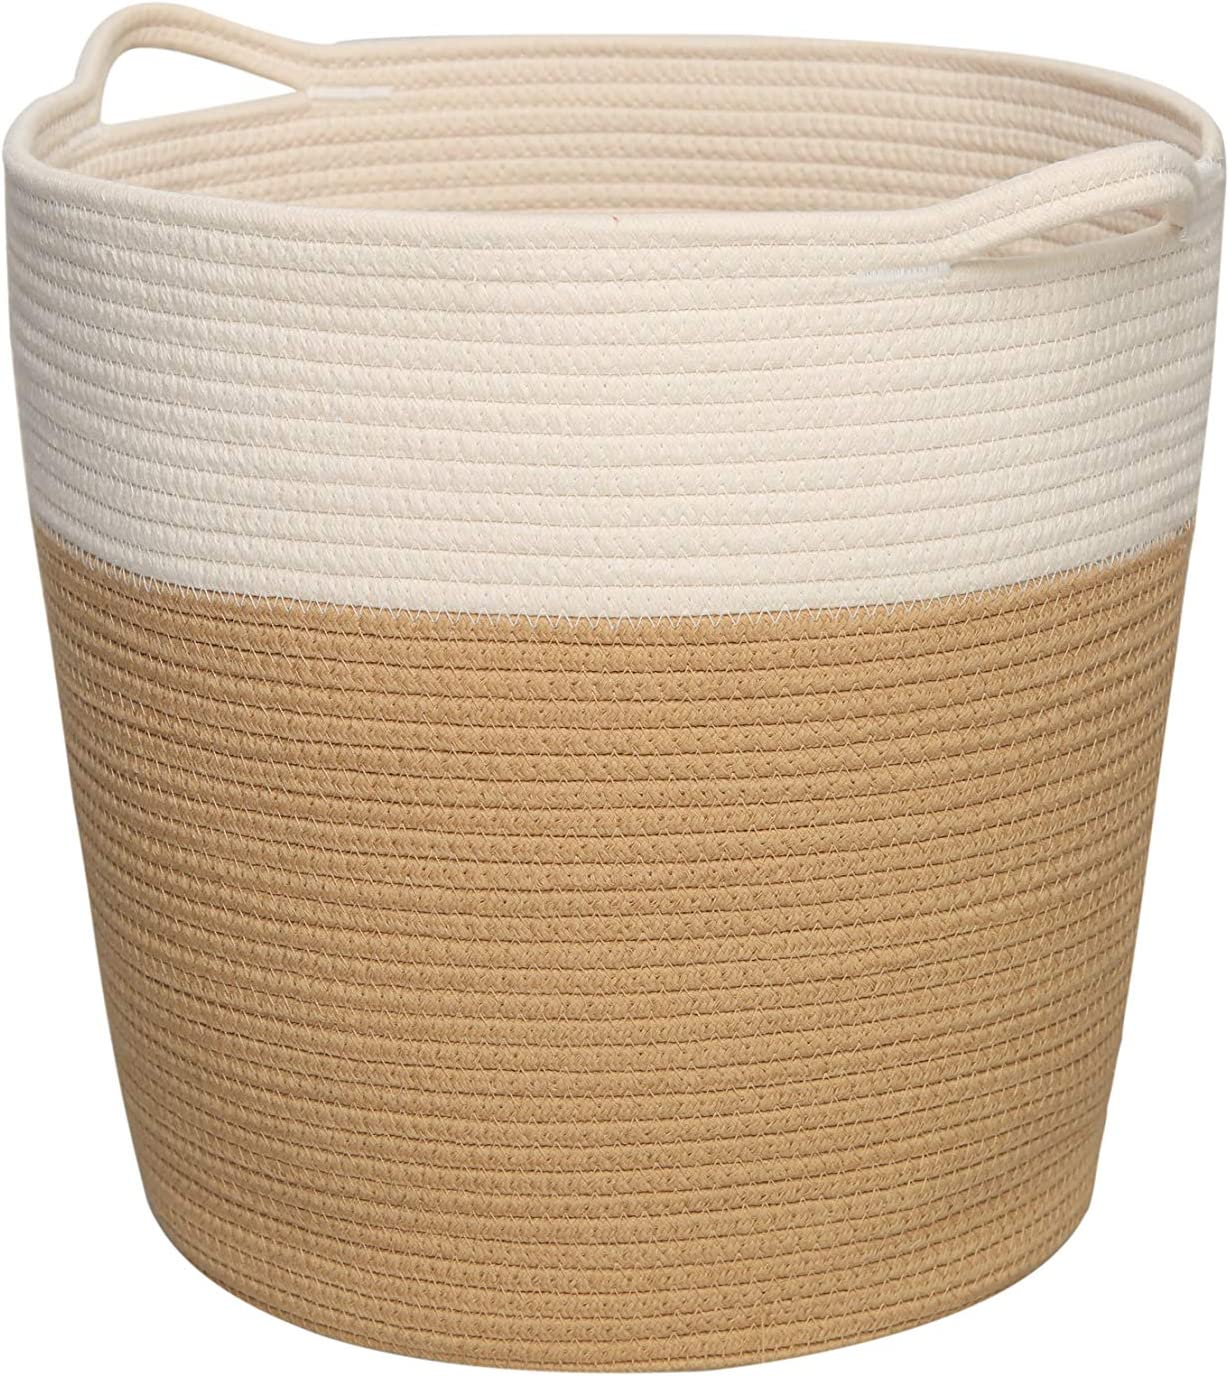 Cotton Rope Basket with Handles, Laundry Basket Clothes Hamper, Home Decor Basket 16.0 x15.0 x12.6 inch, Towel Storage Basket, Woven Blanket Basket, Laundry Hamper, Environmental Protection Material